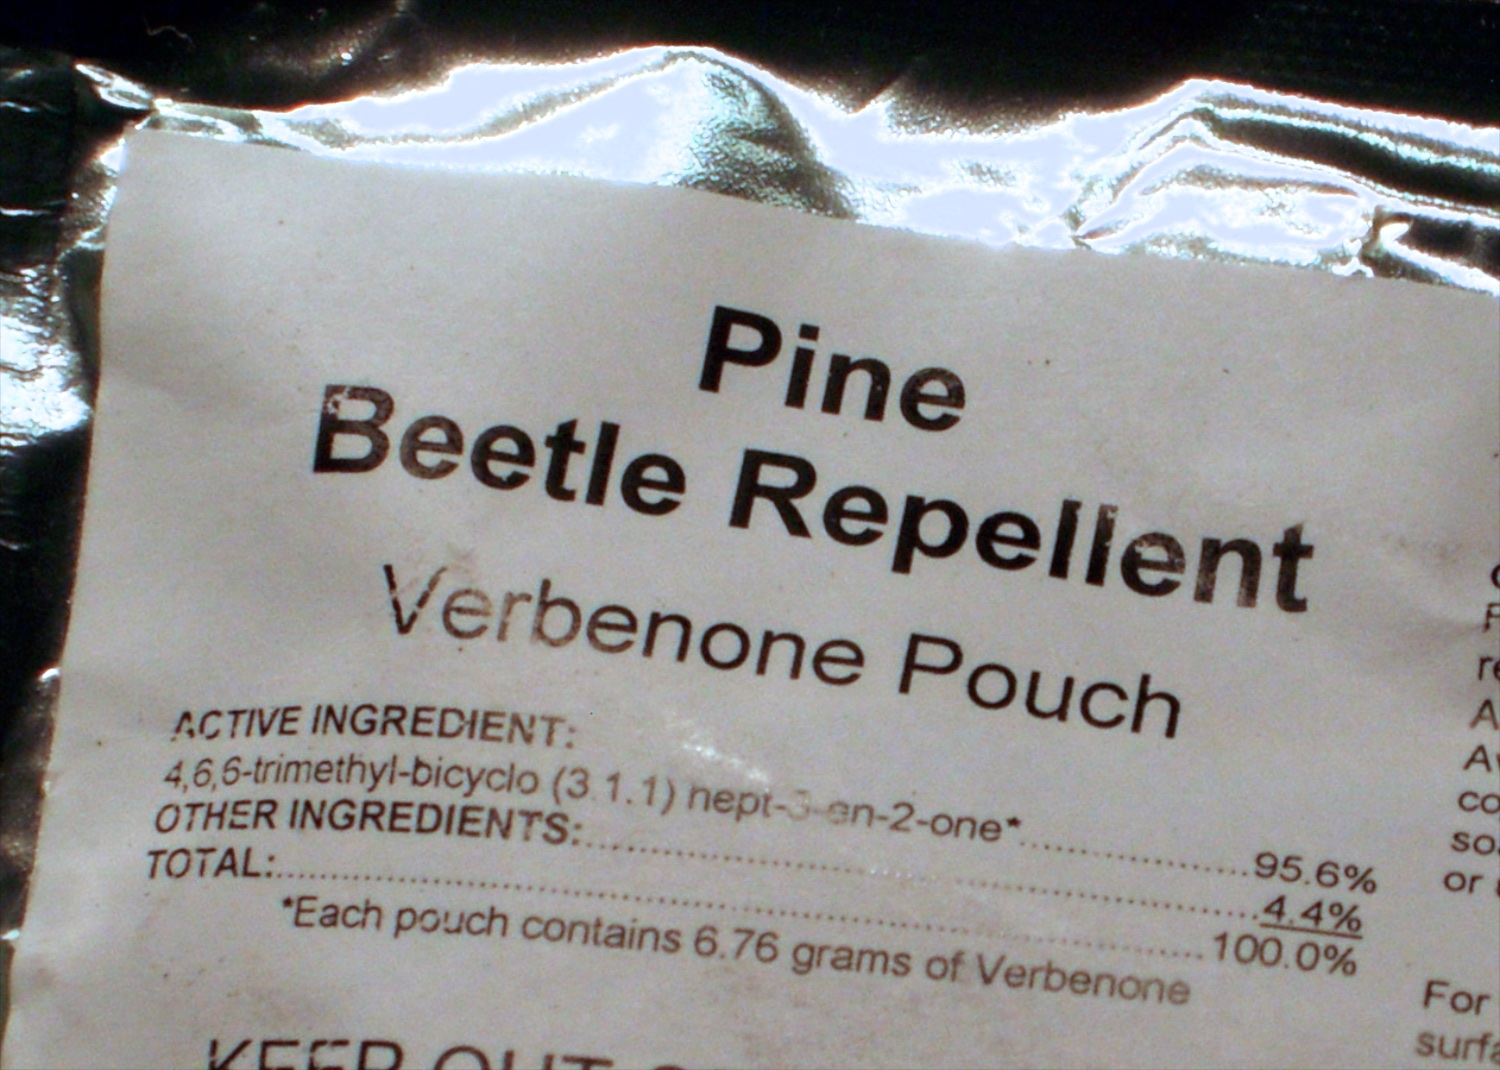 Label on package of 10 pouches of verbenone